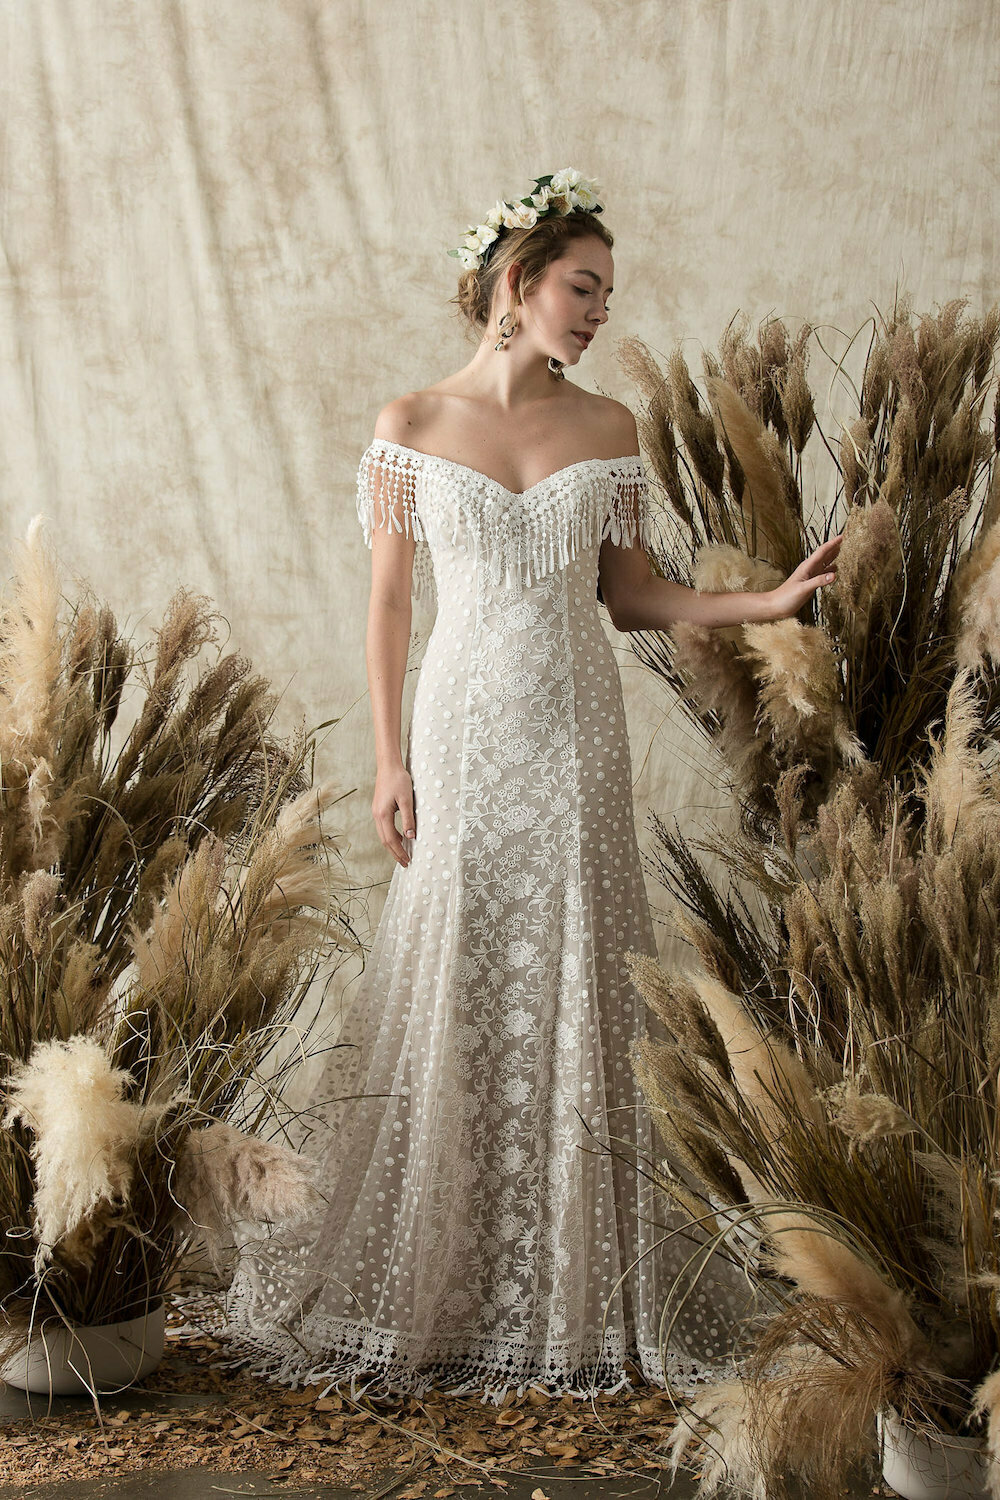 dreamers-lovers-bohemian-fringe-wedding-dress